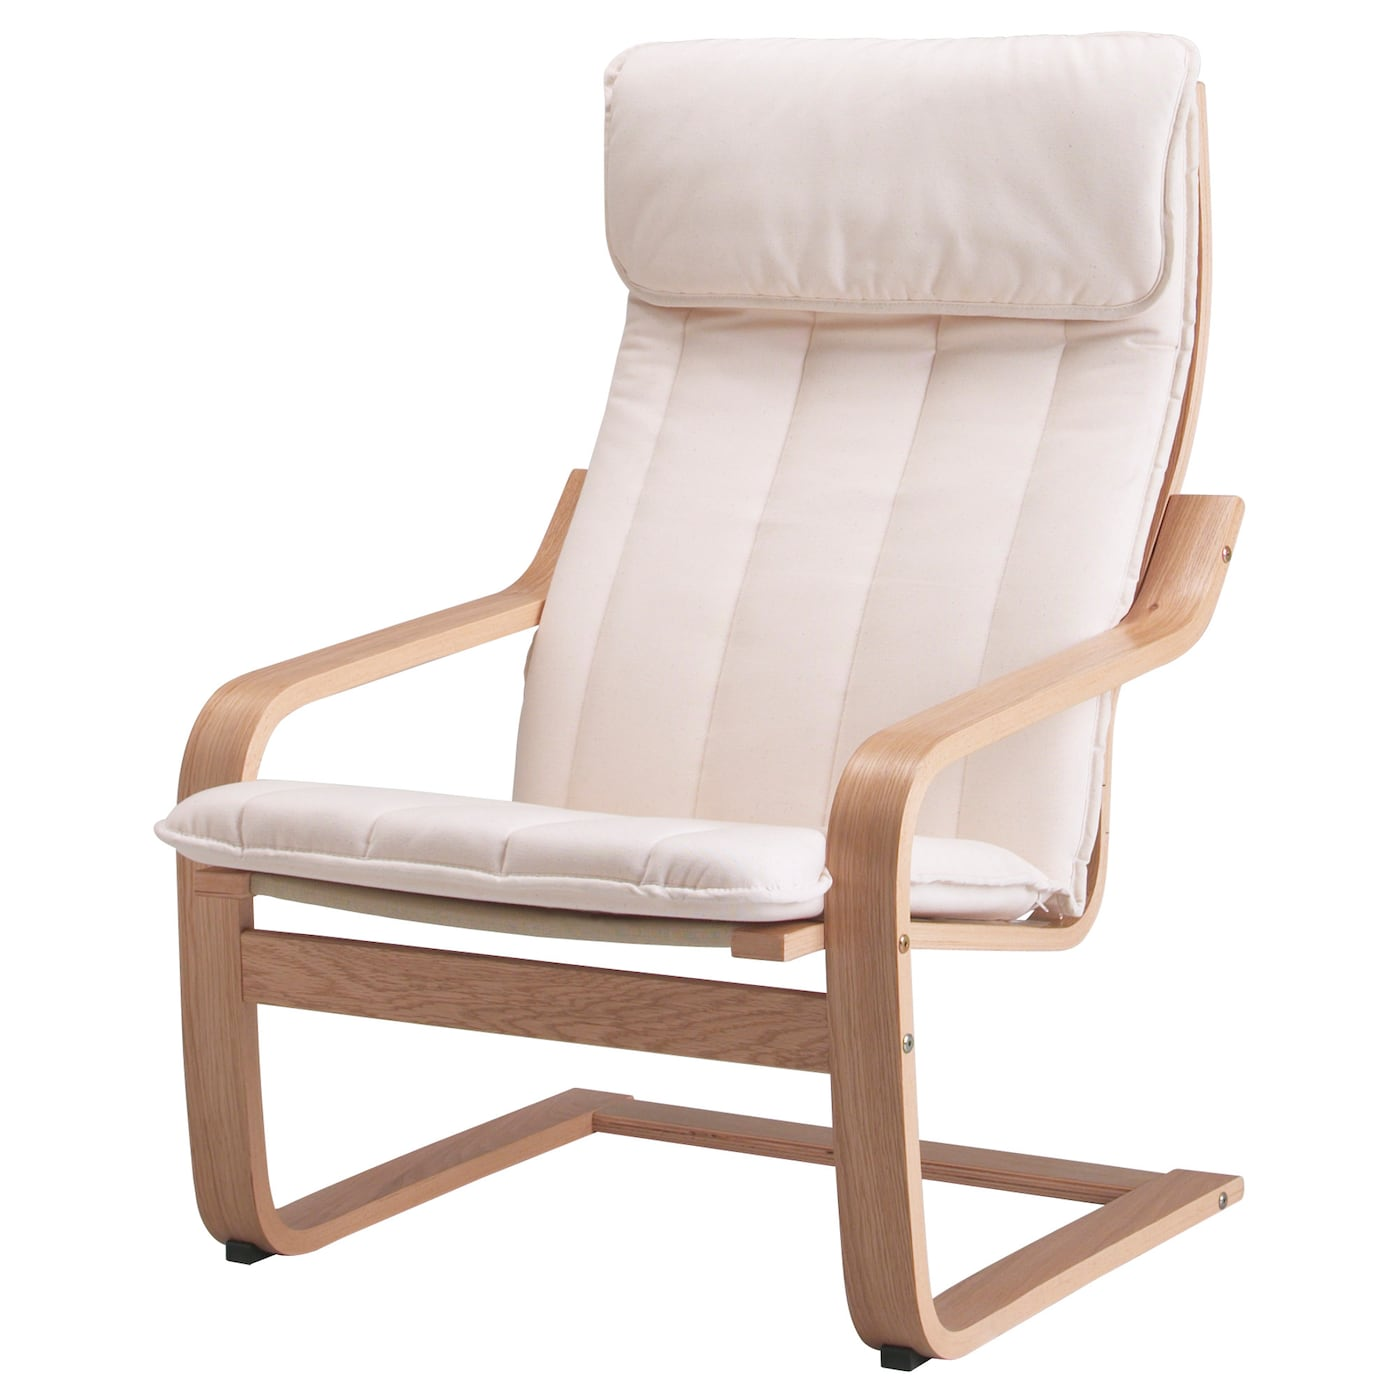 Ikea Poang Armchair Layer Glued Bent Oak Gives Comfortable Resilience